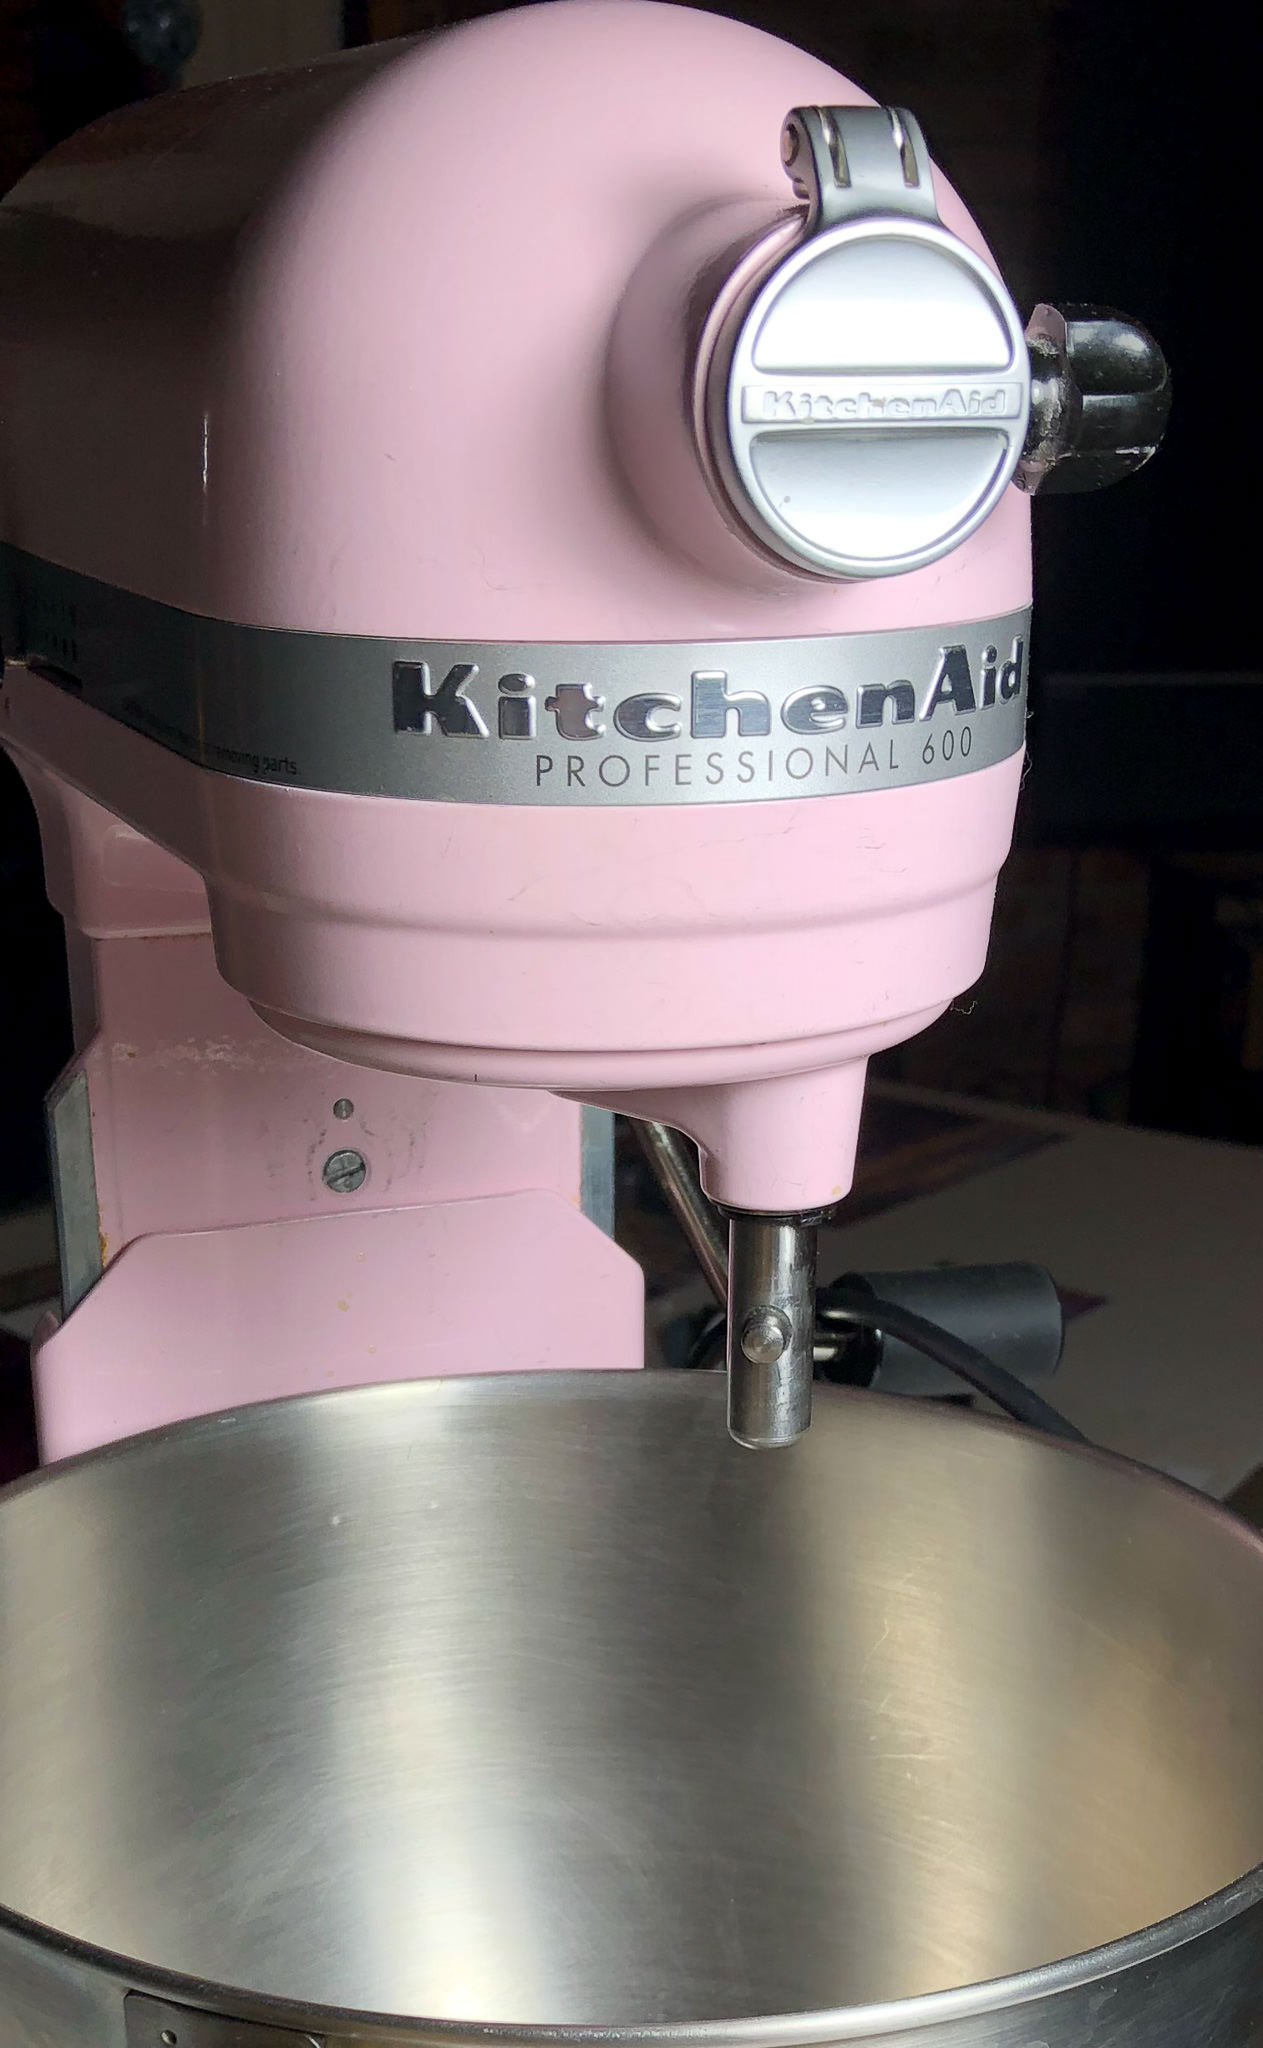 kitchen aid professional 600 pink mixer kitchenaid pro repair all the pages are my days